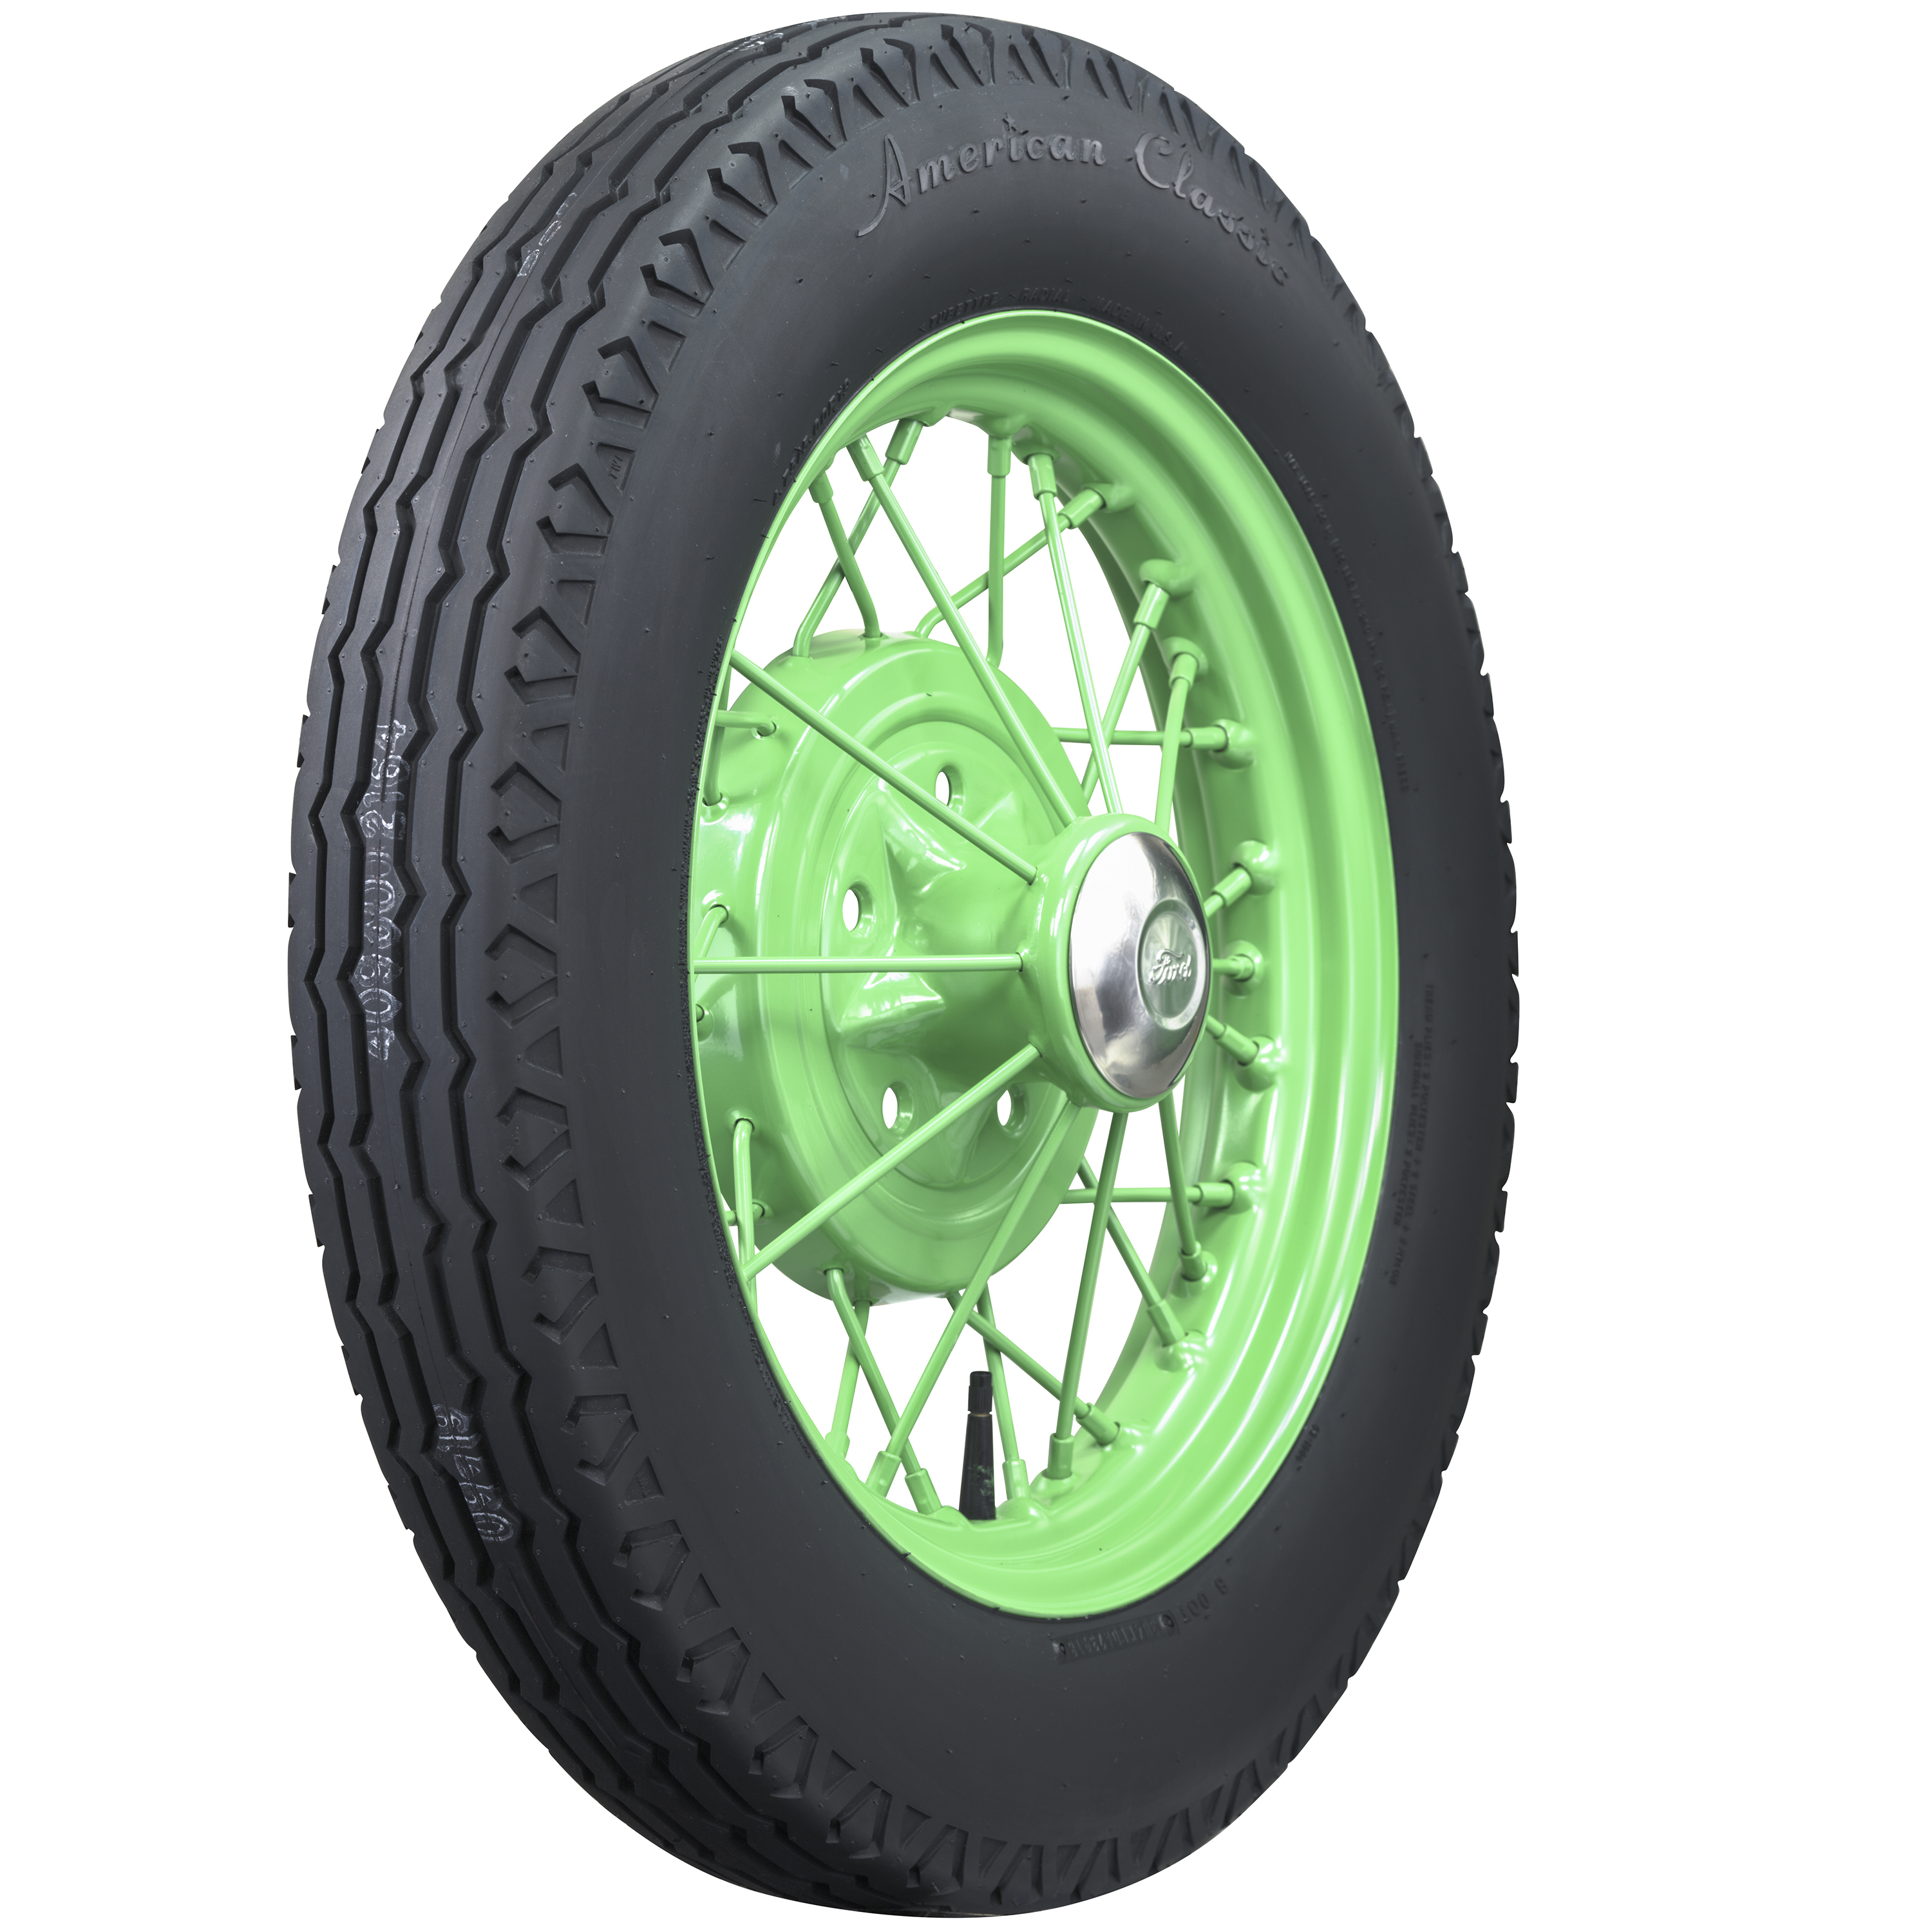 The tires will also be offered without the whitewall.